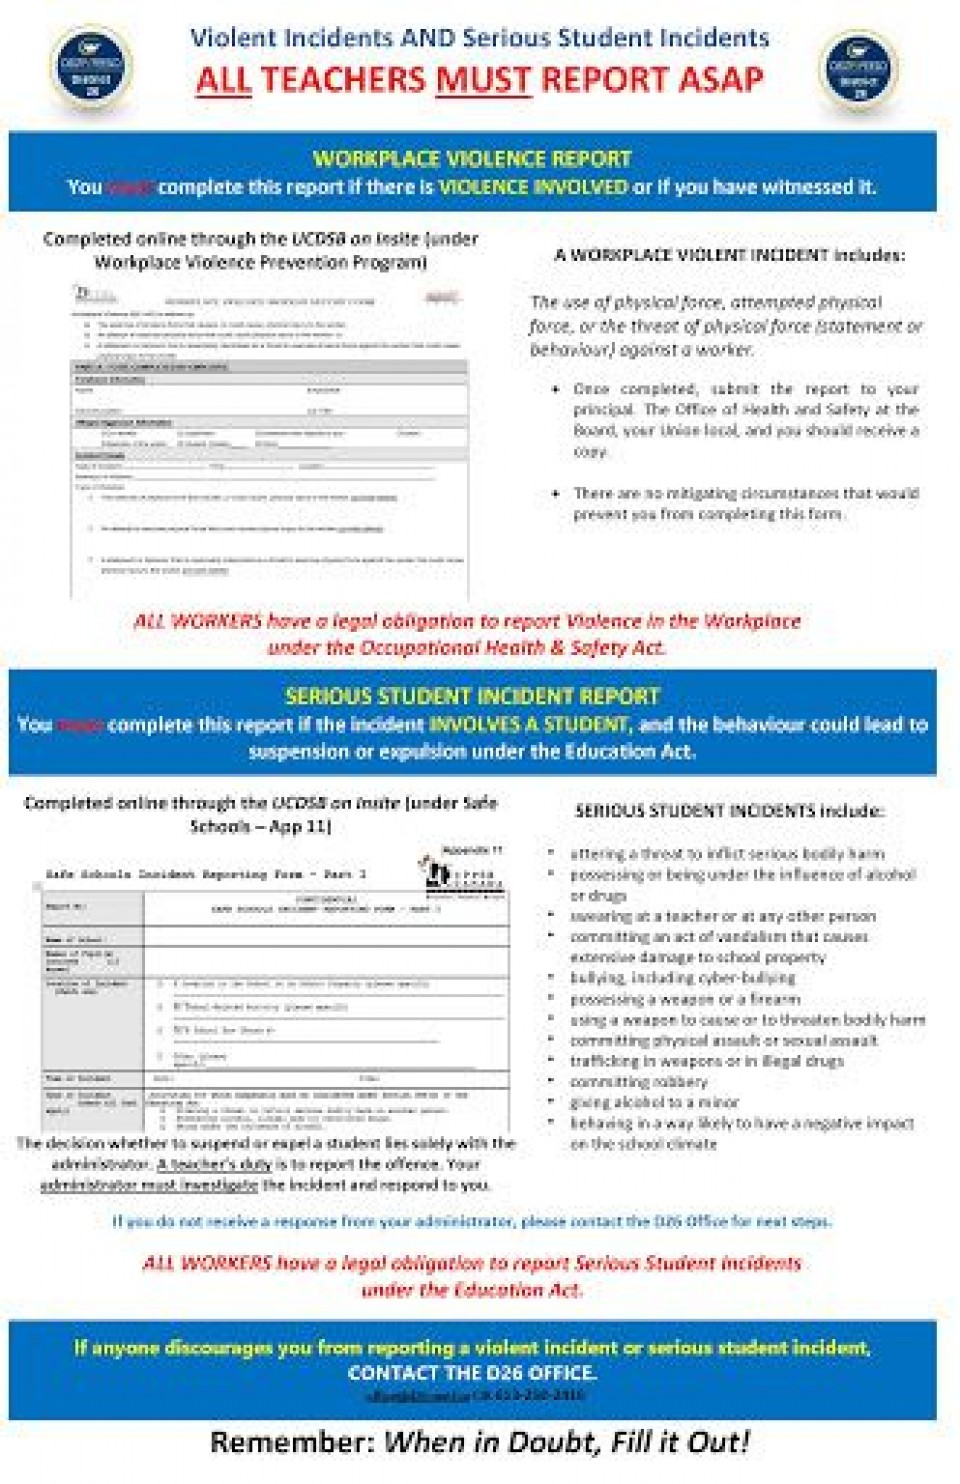 000 Stirring Workplace Injury Report Form Ontario Sample  Incident Violence960